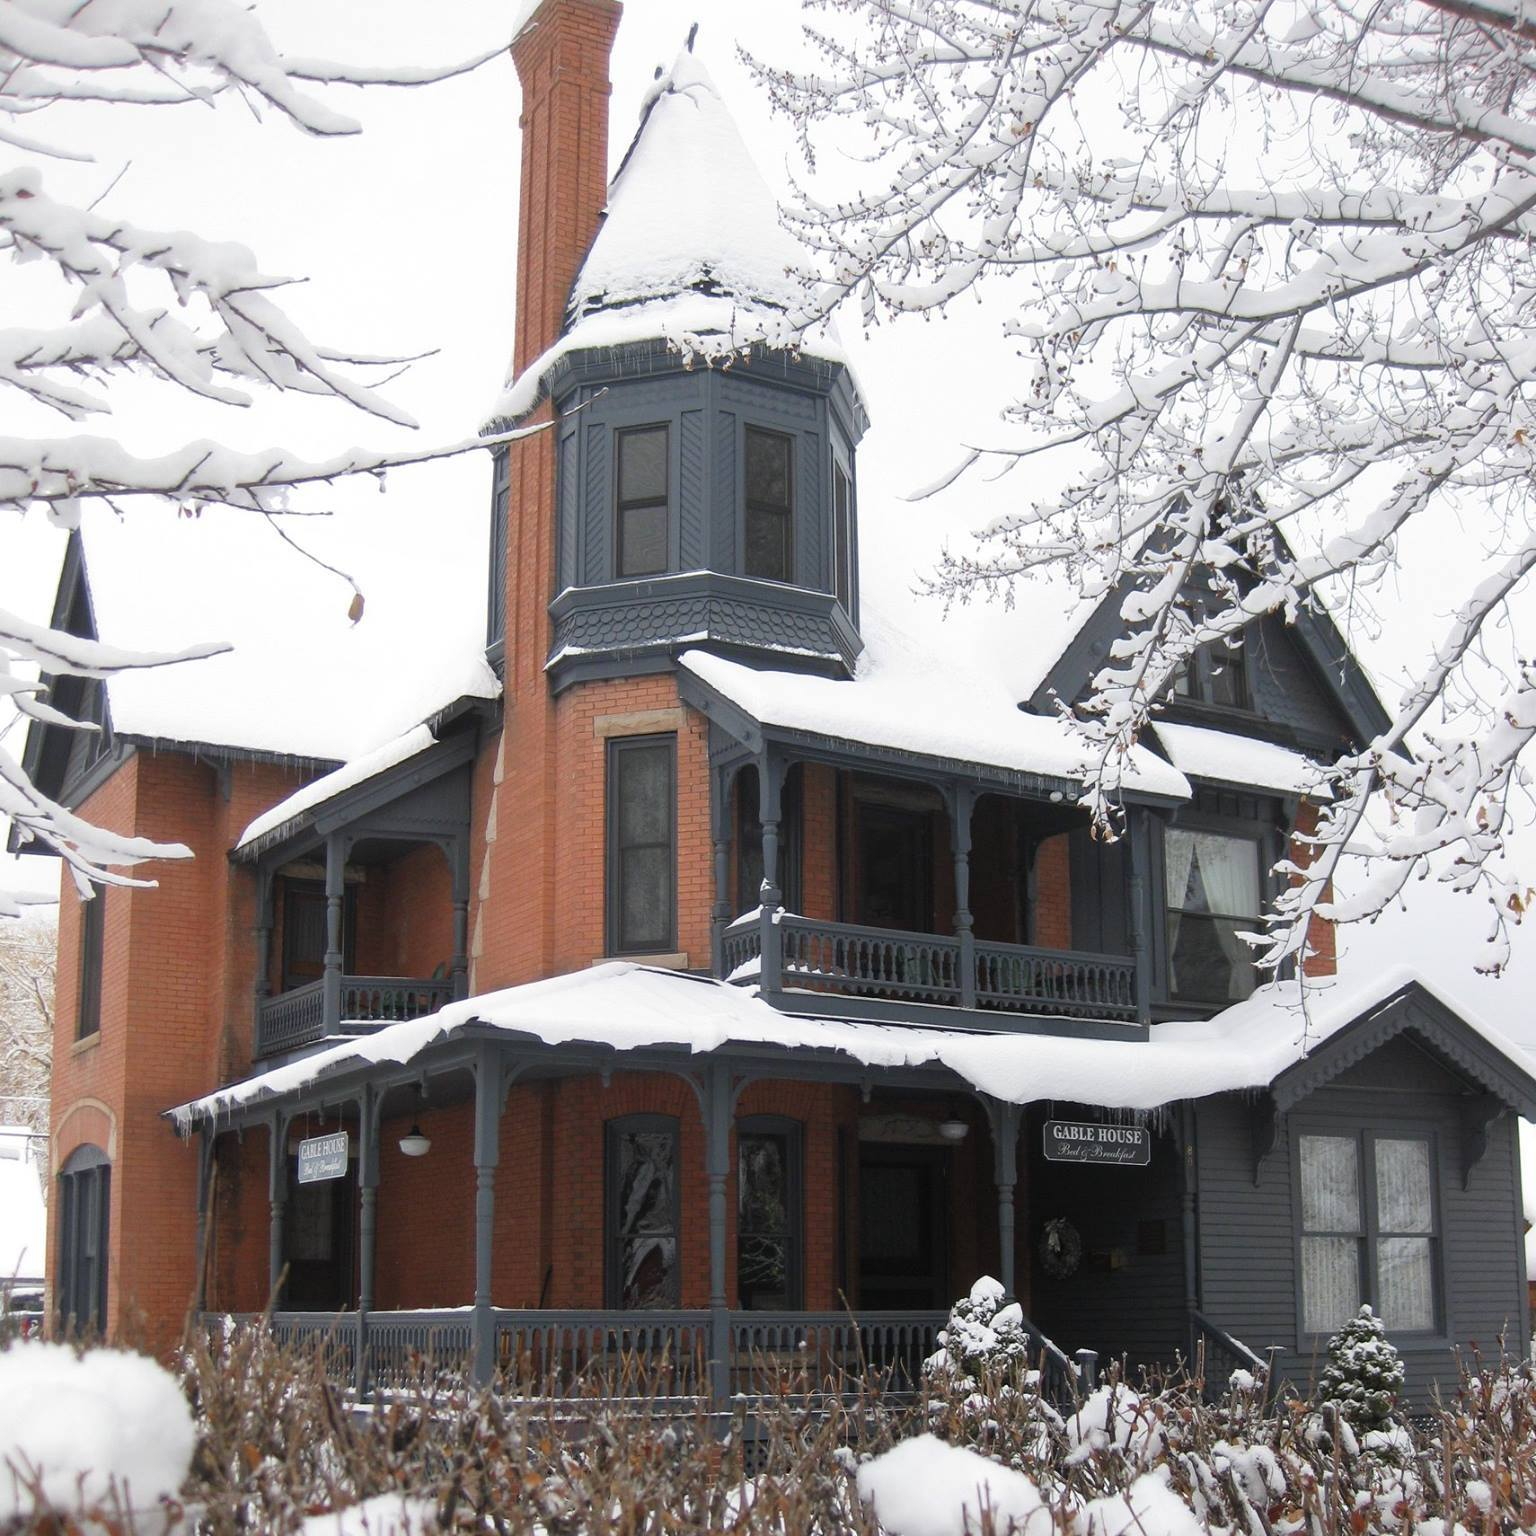 image of gable house bed and breakfast